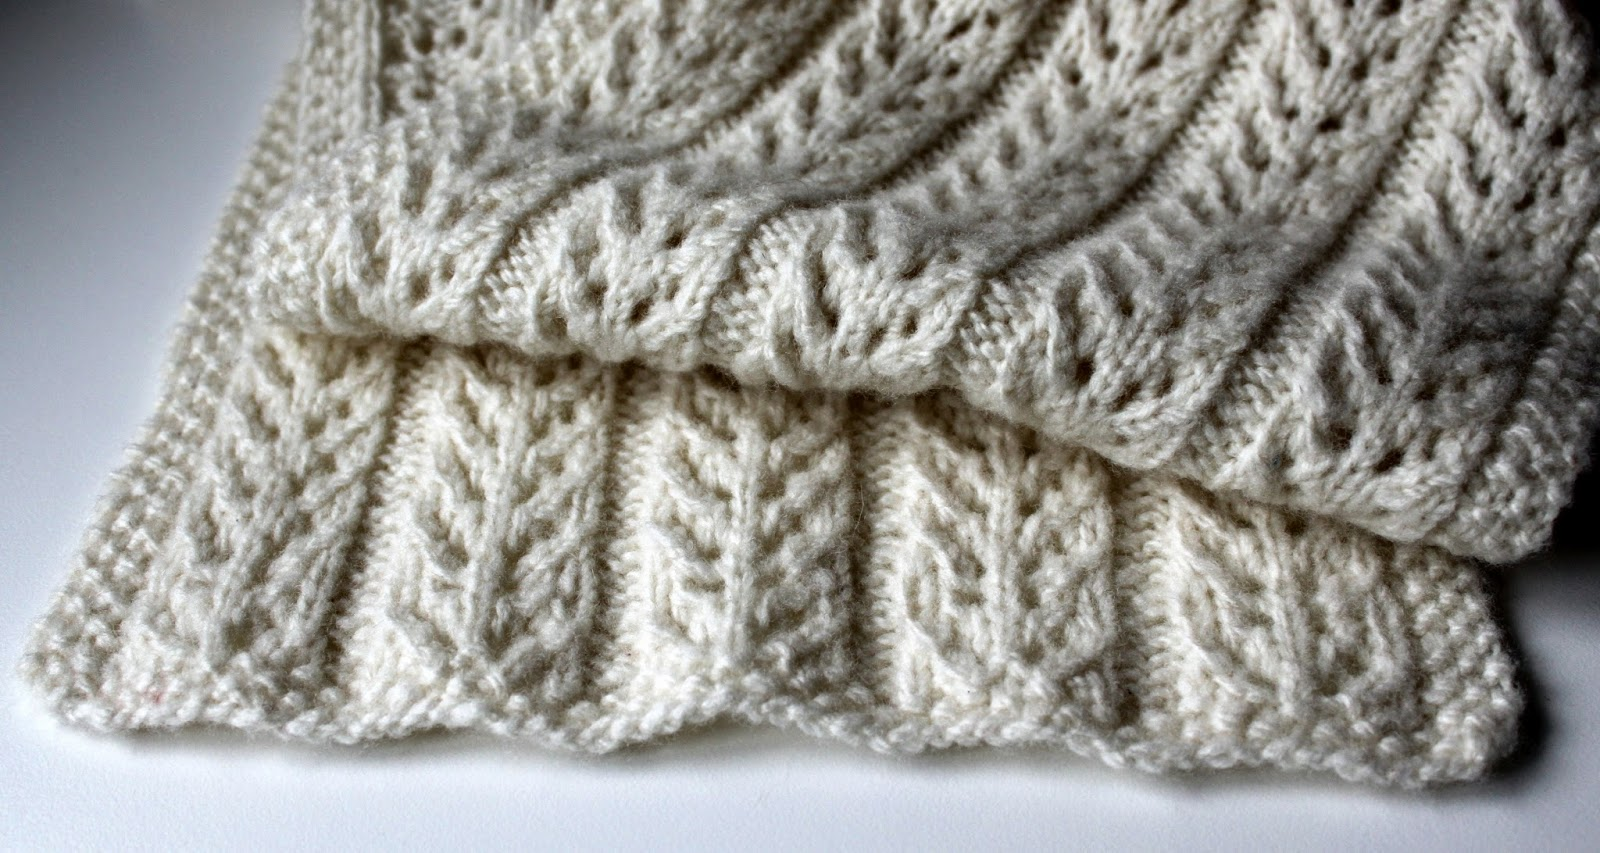 Hand Knitted Things: News